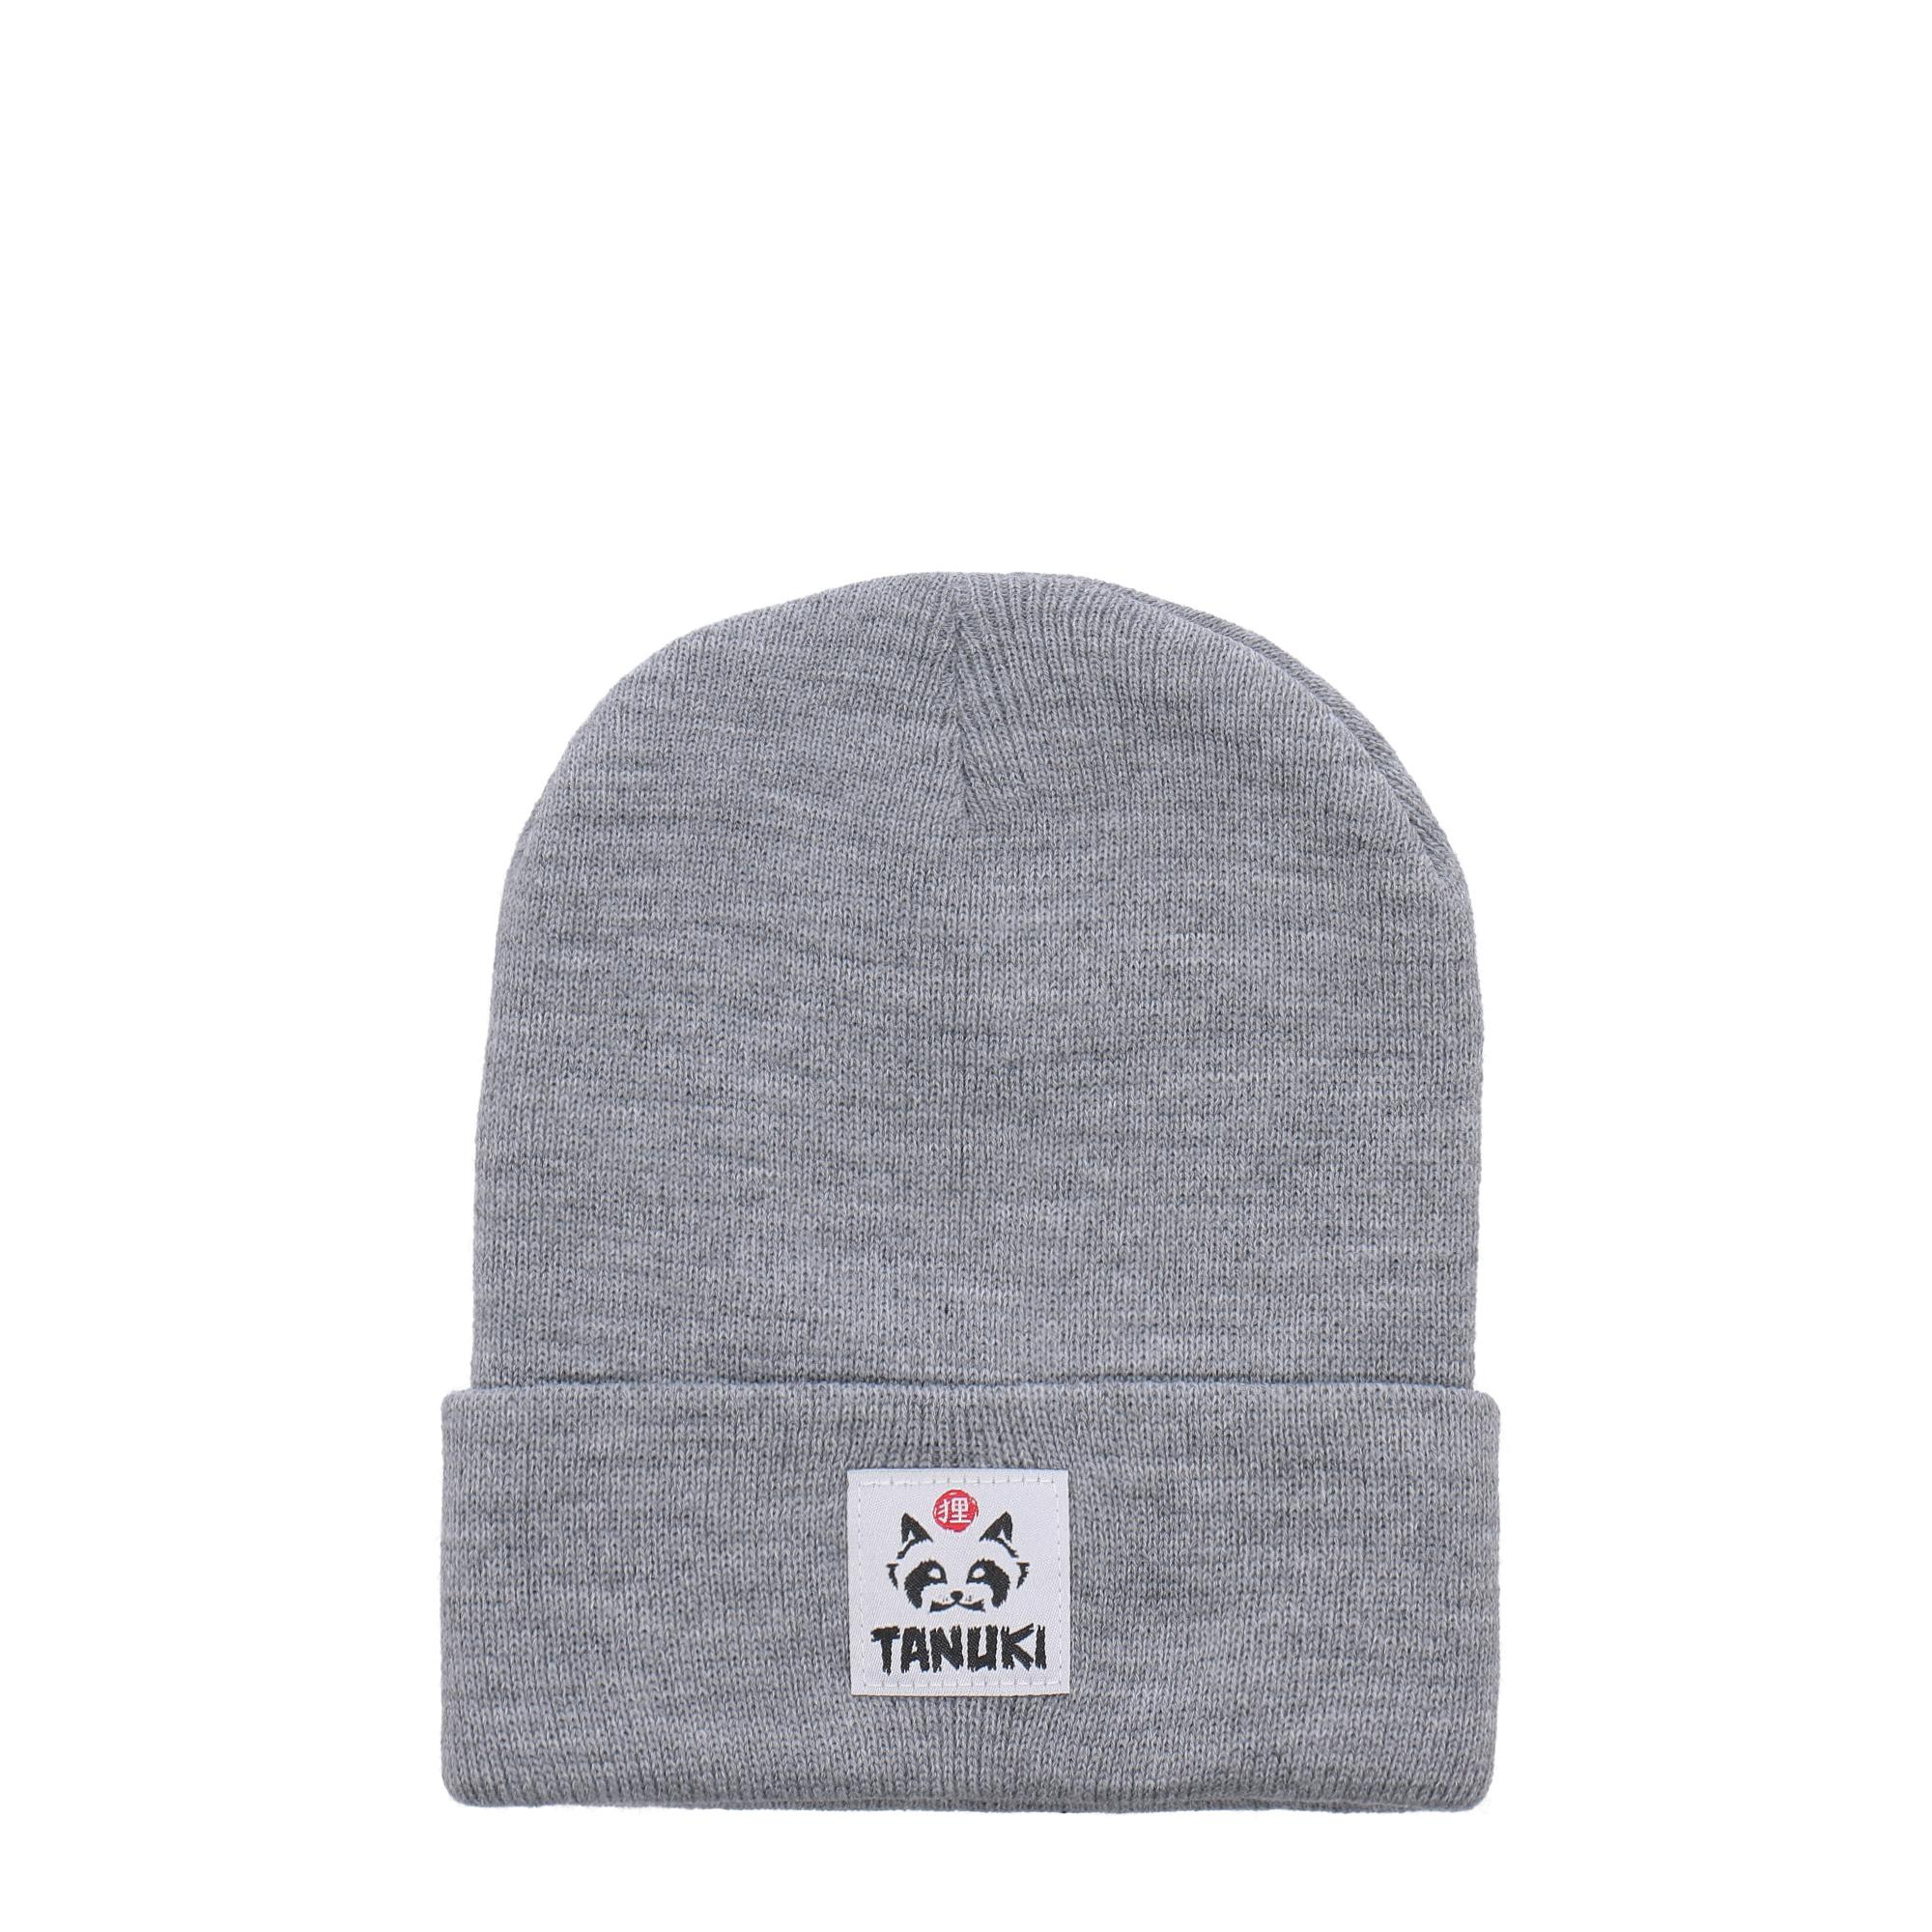 Tanuki Beanie Heather grey